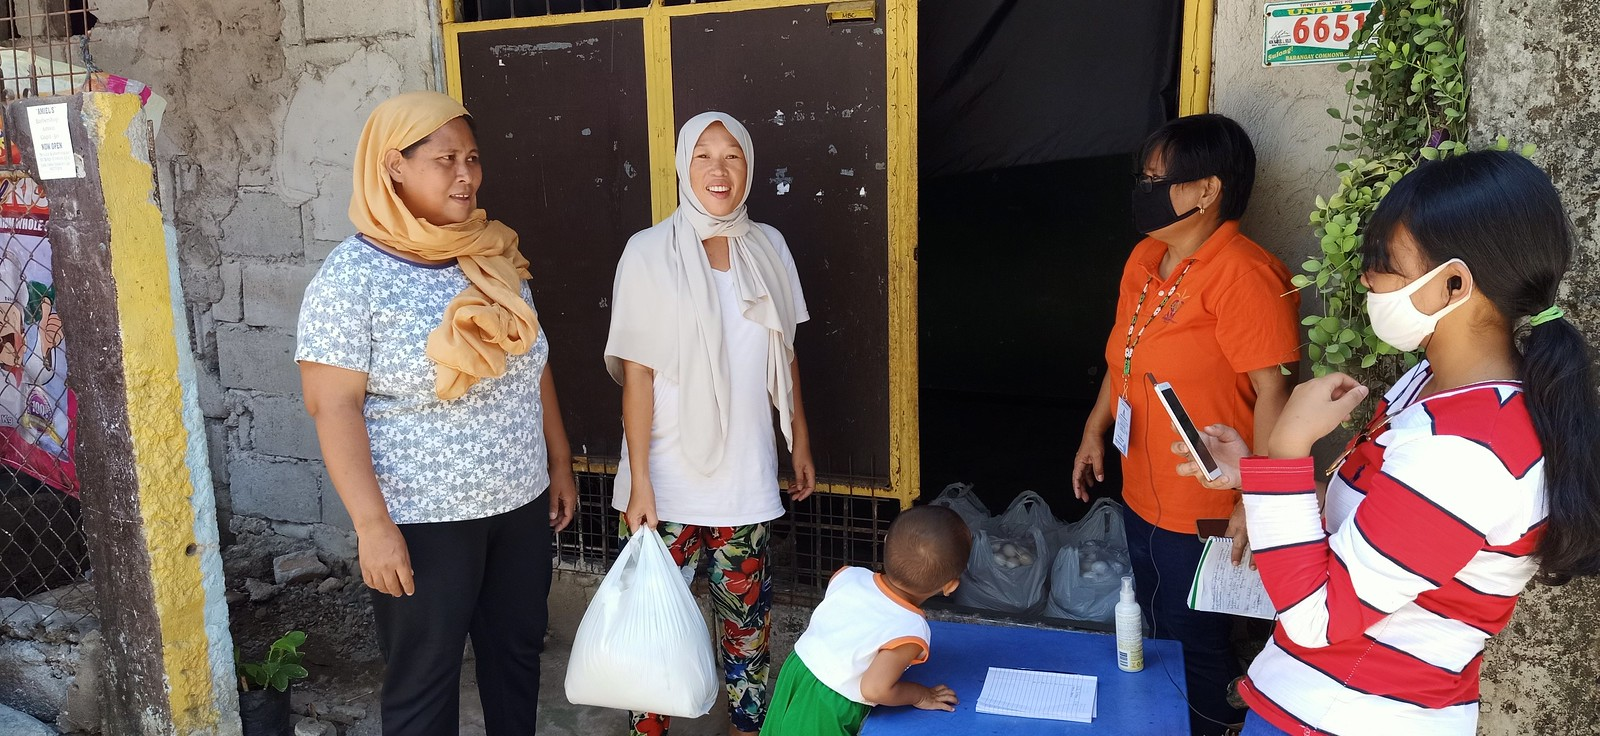 Filipino Christians provide relief goods during pandemic